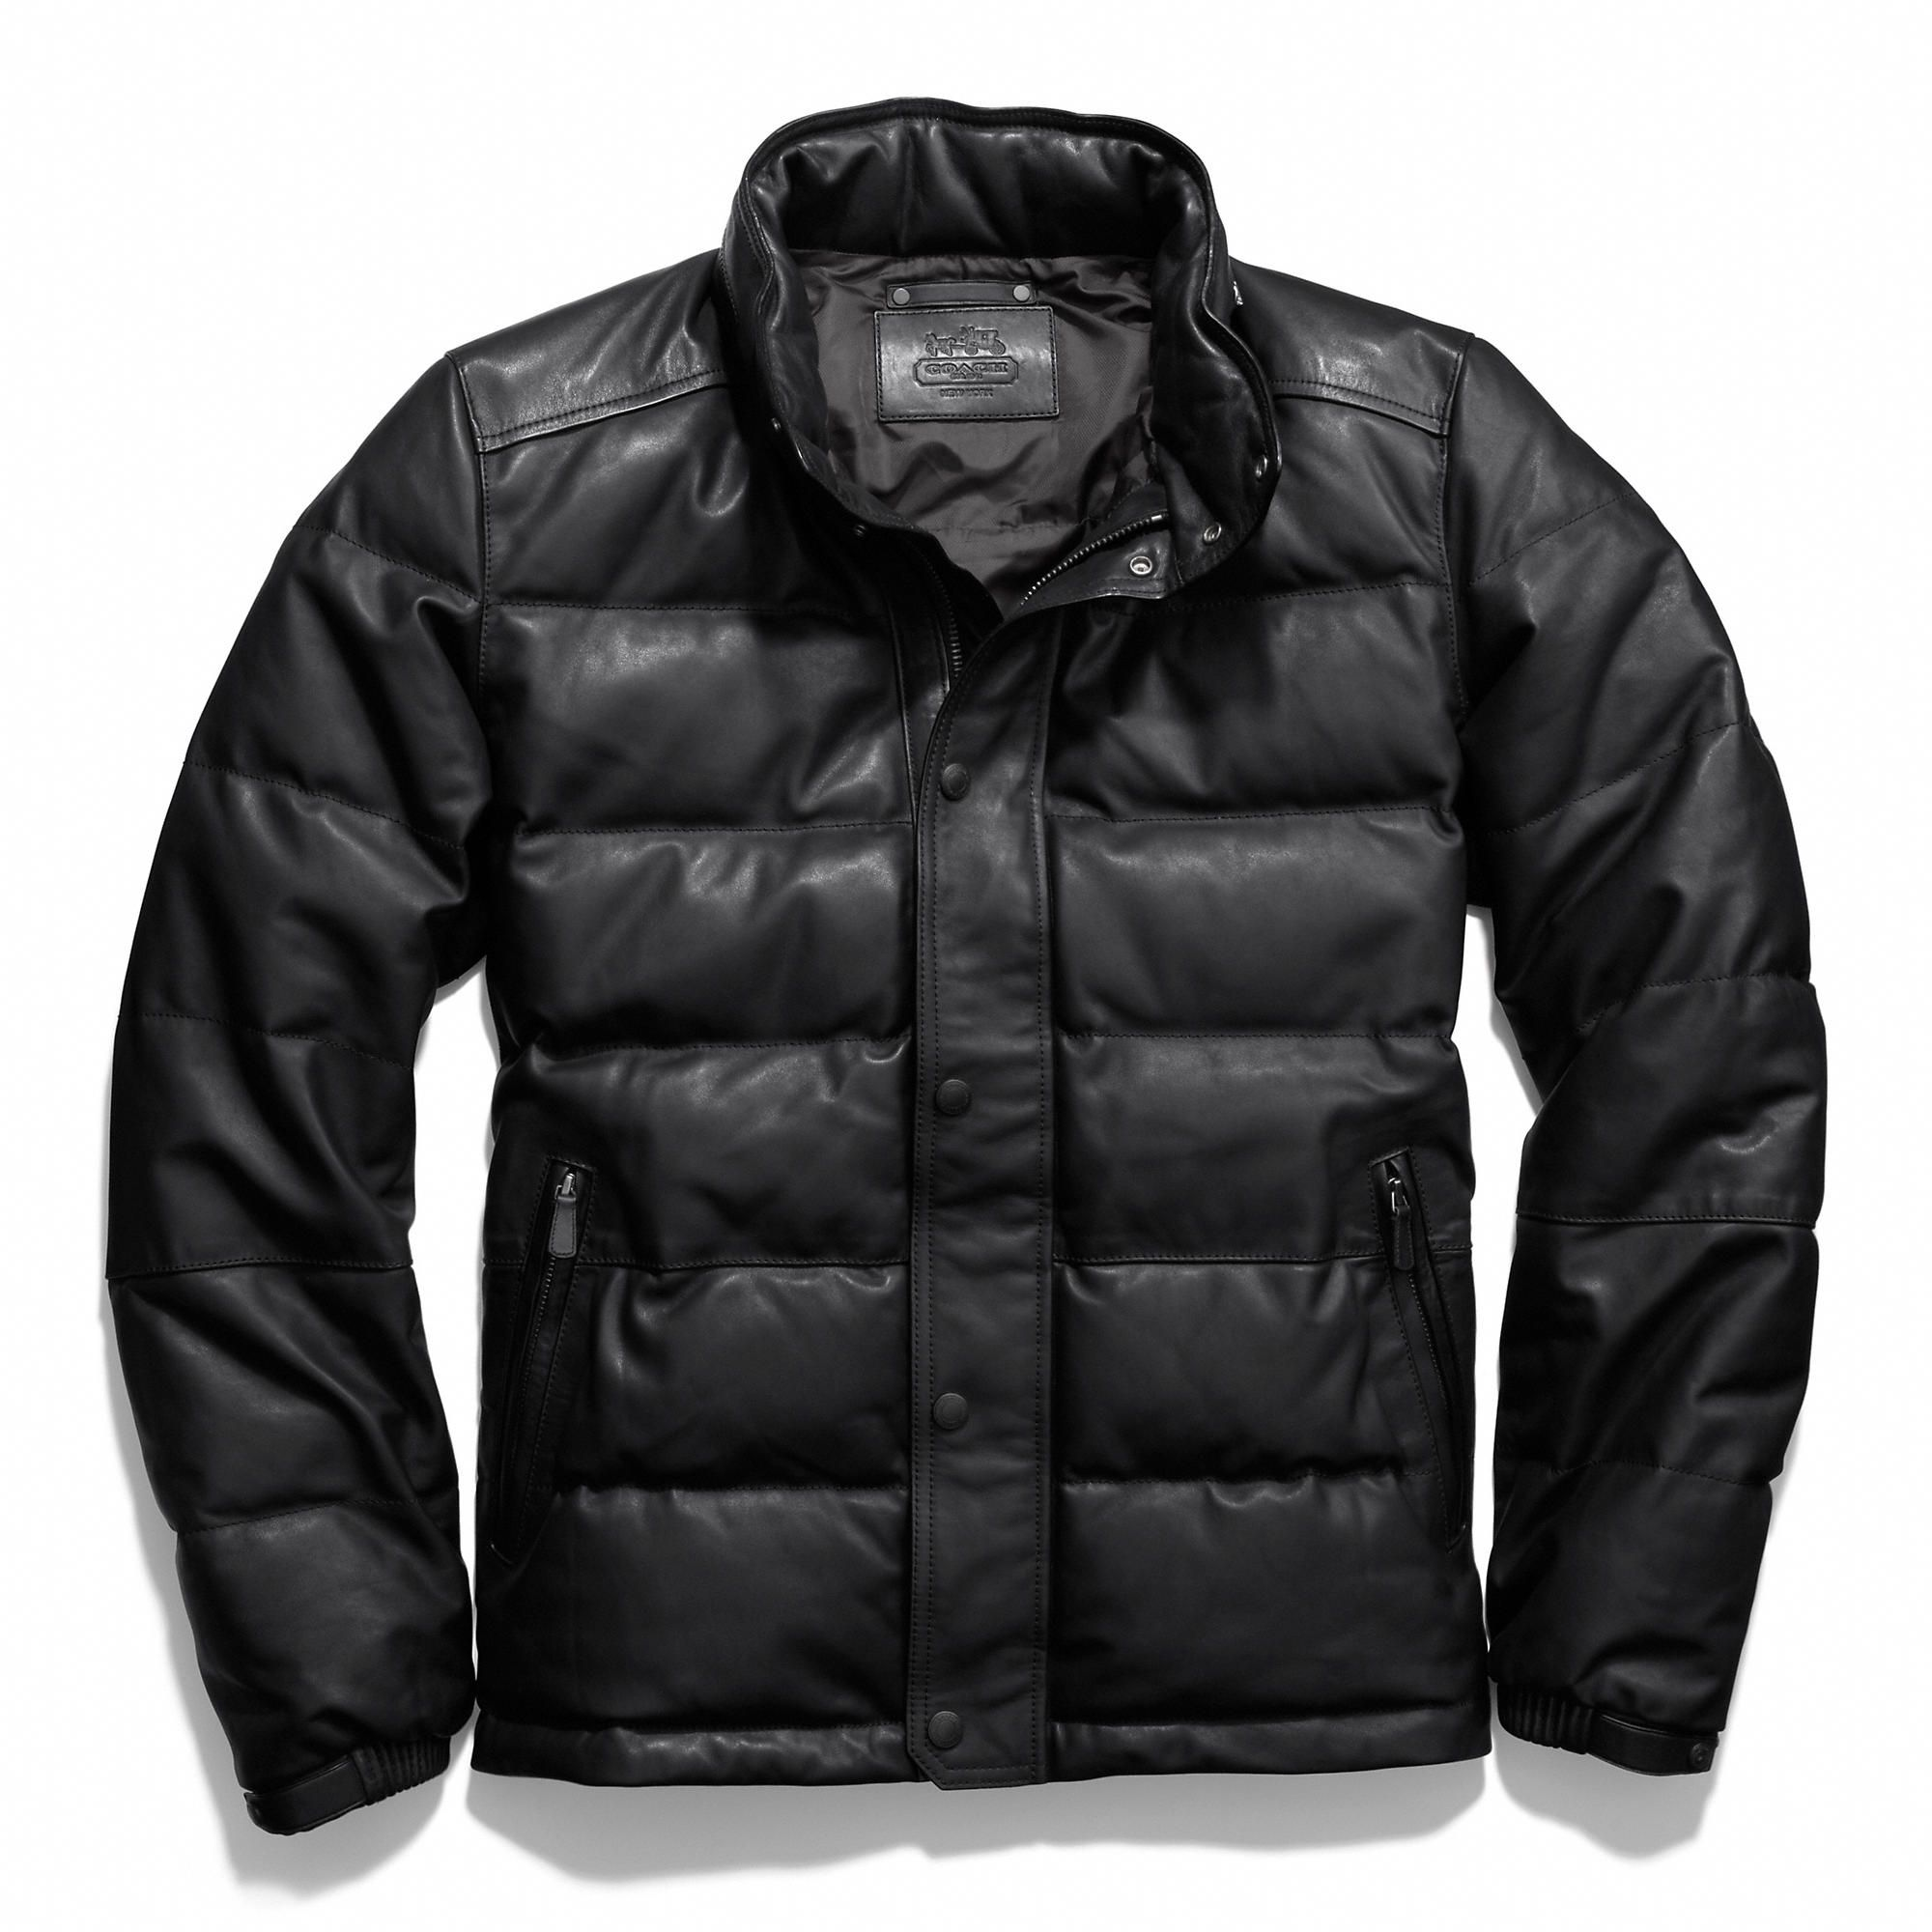 c61cca053 Coach :: CLARKSON LEATHER DOWN JACKET | Style - Leather Jackets ...